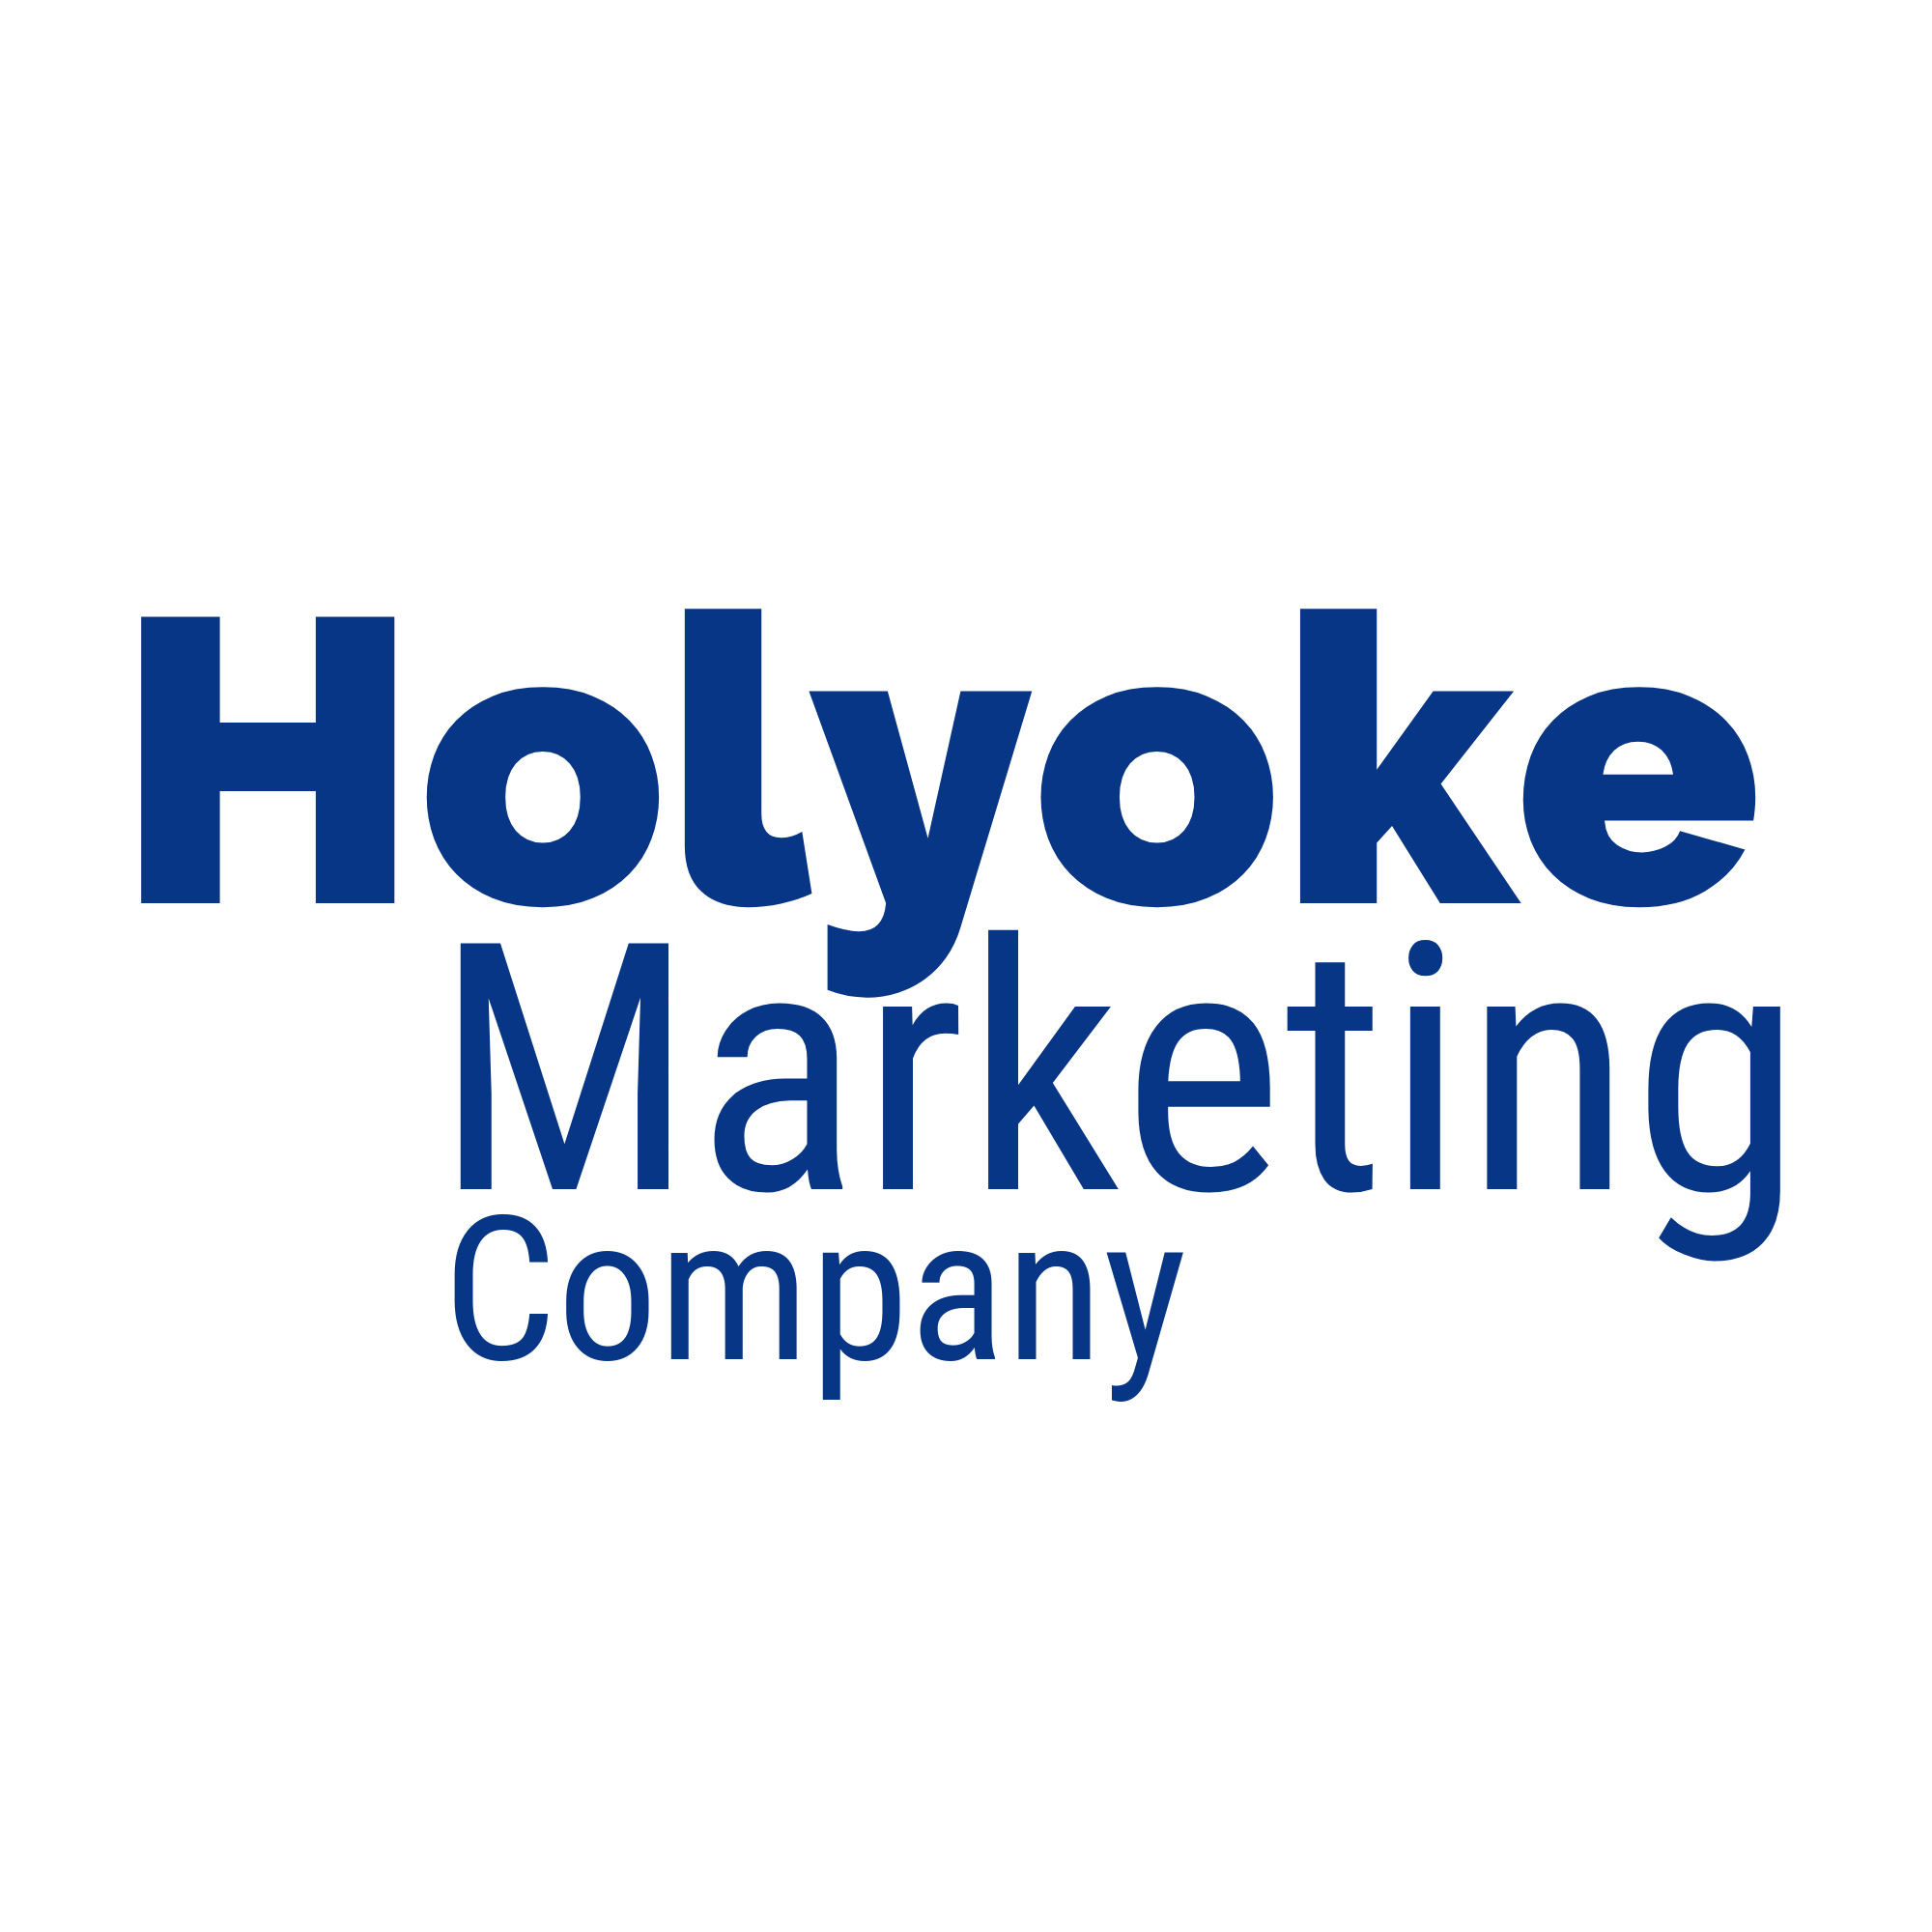 Holyoke Marketing Company